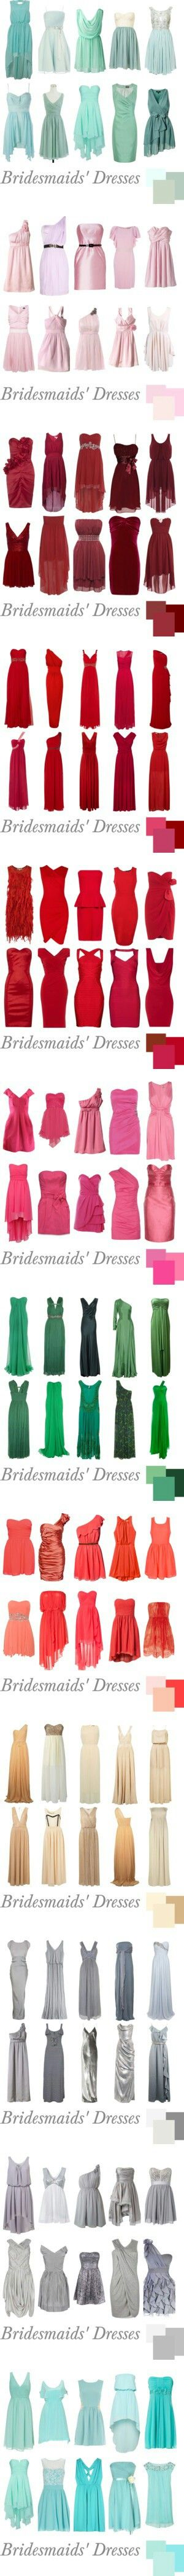 Bridesmaid dress heaven!! Colors for Spring 2015 iPad + Engaged ❤ Bespoke//App  Discover//Save//Share www.bespoke-app.com